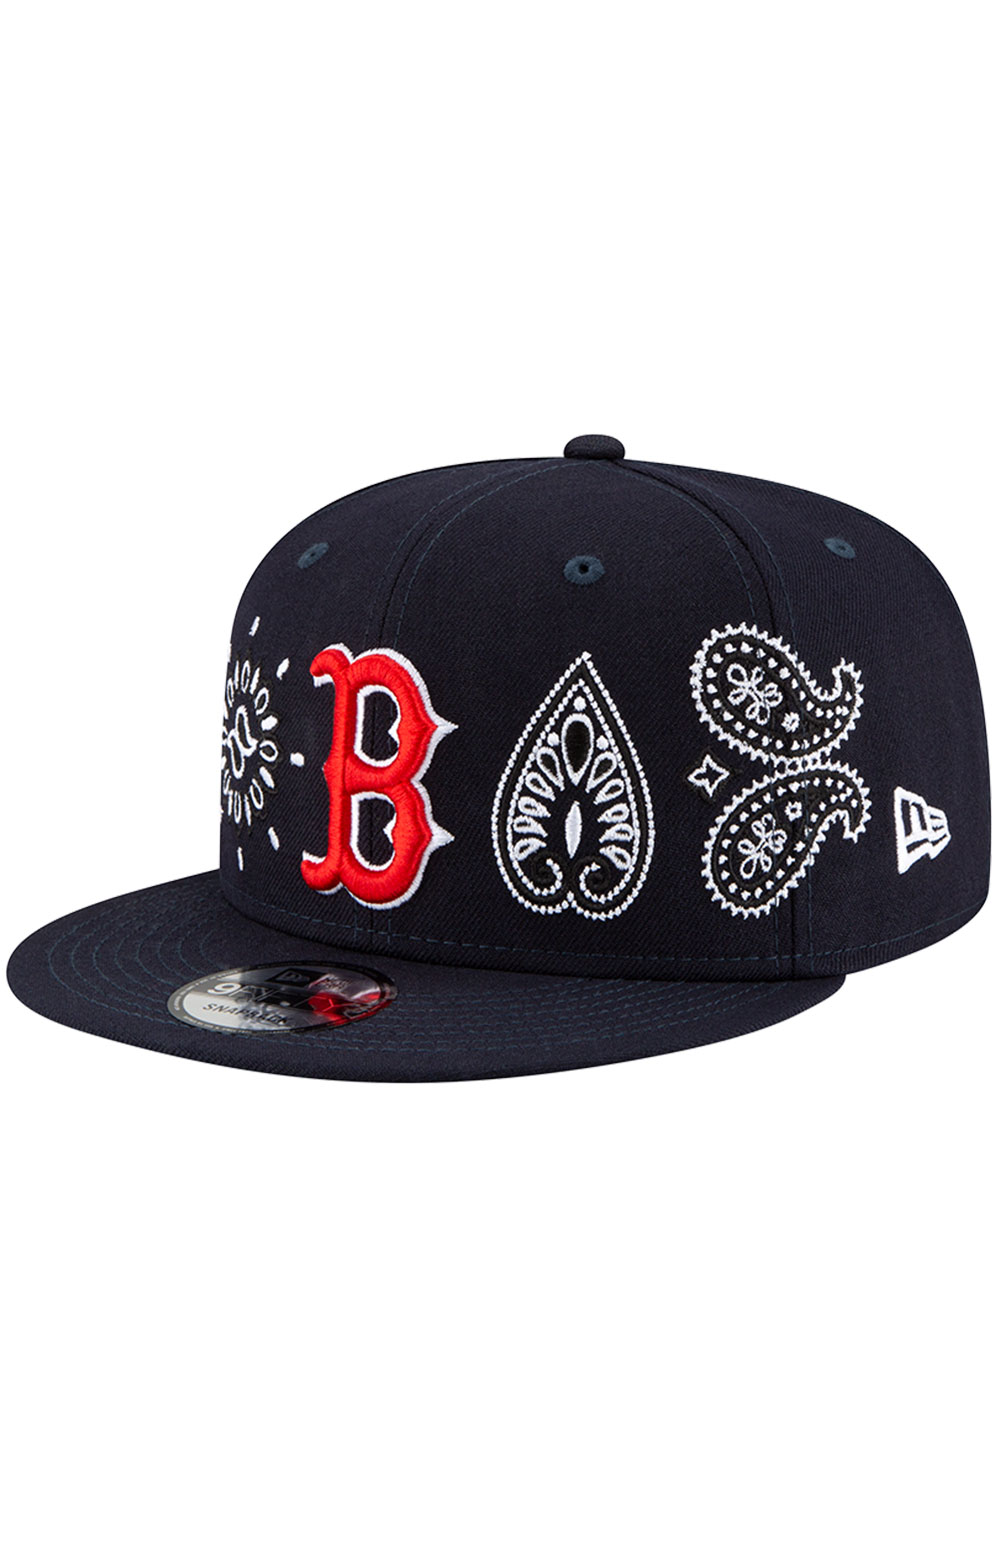 Boston Red Sox Paisley Elements 9Fifty Snap-Back Hat - Black